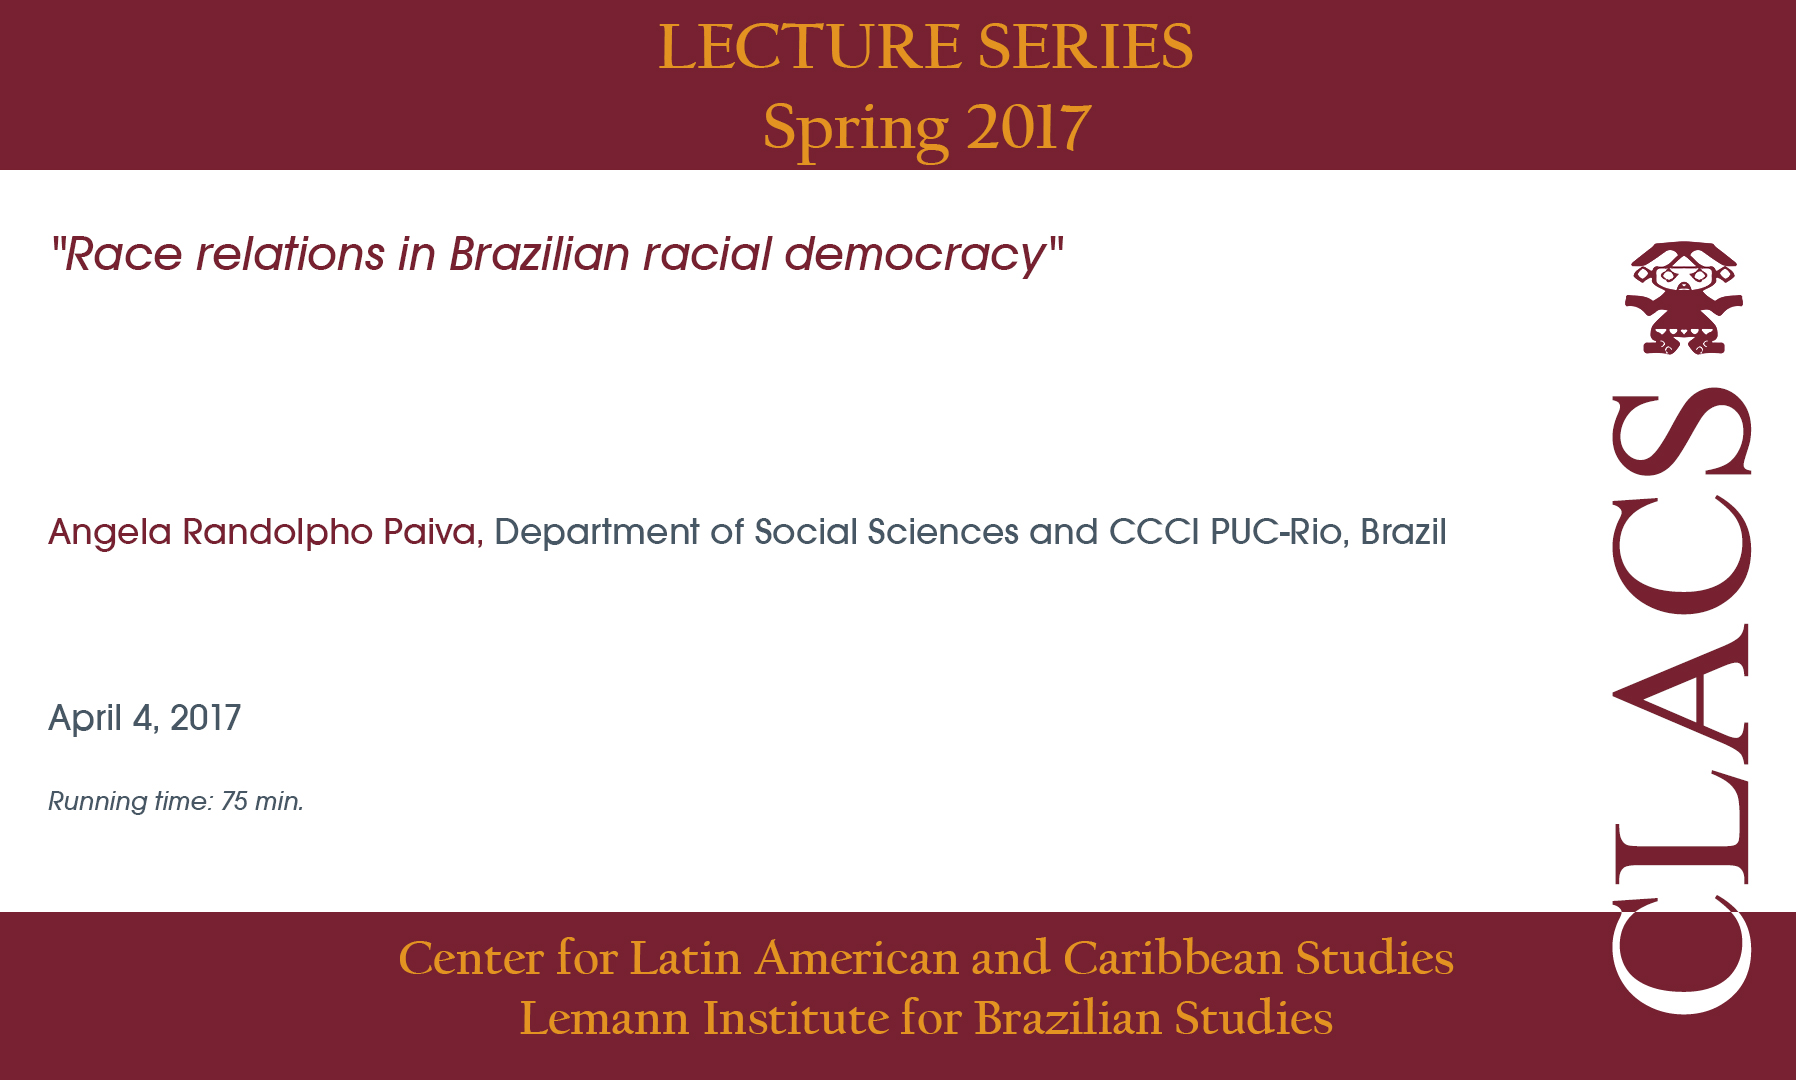 Race relations in Brazilian racial democracy